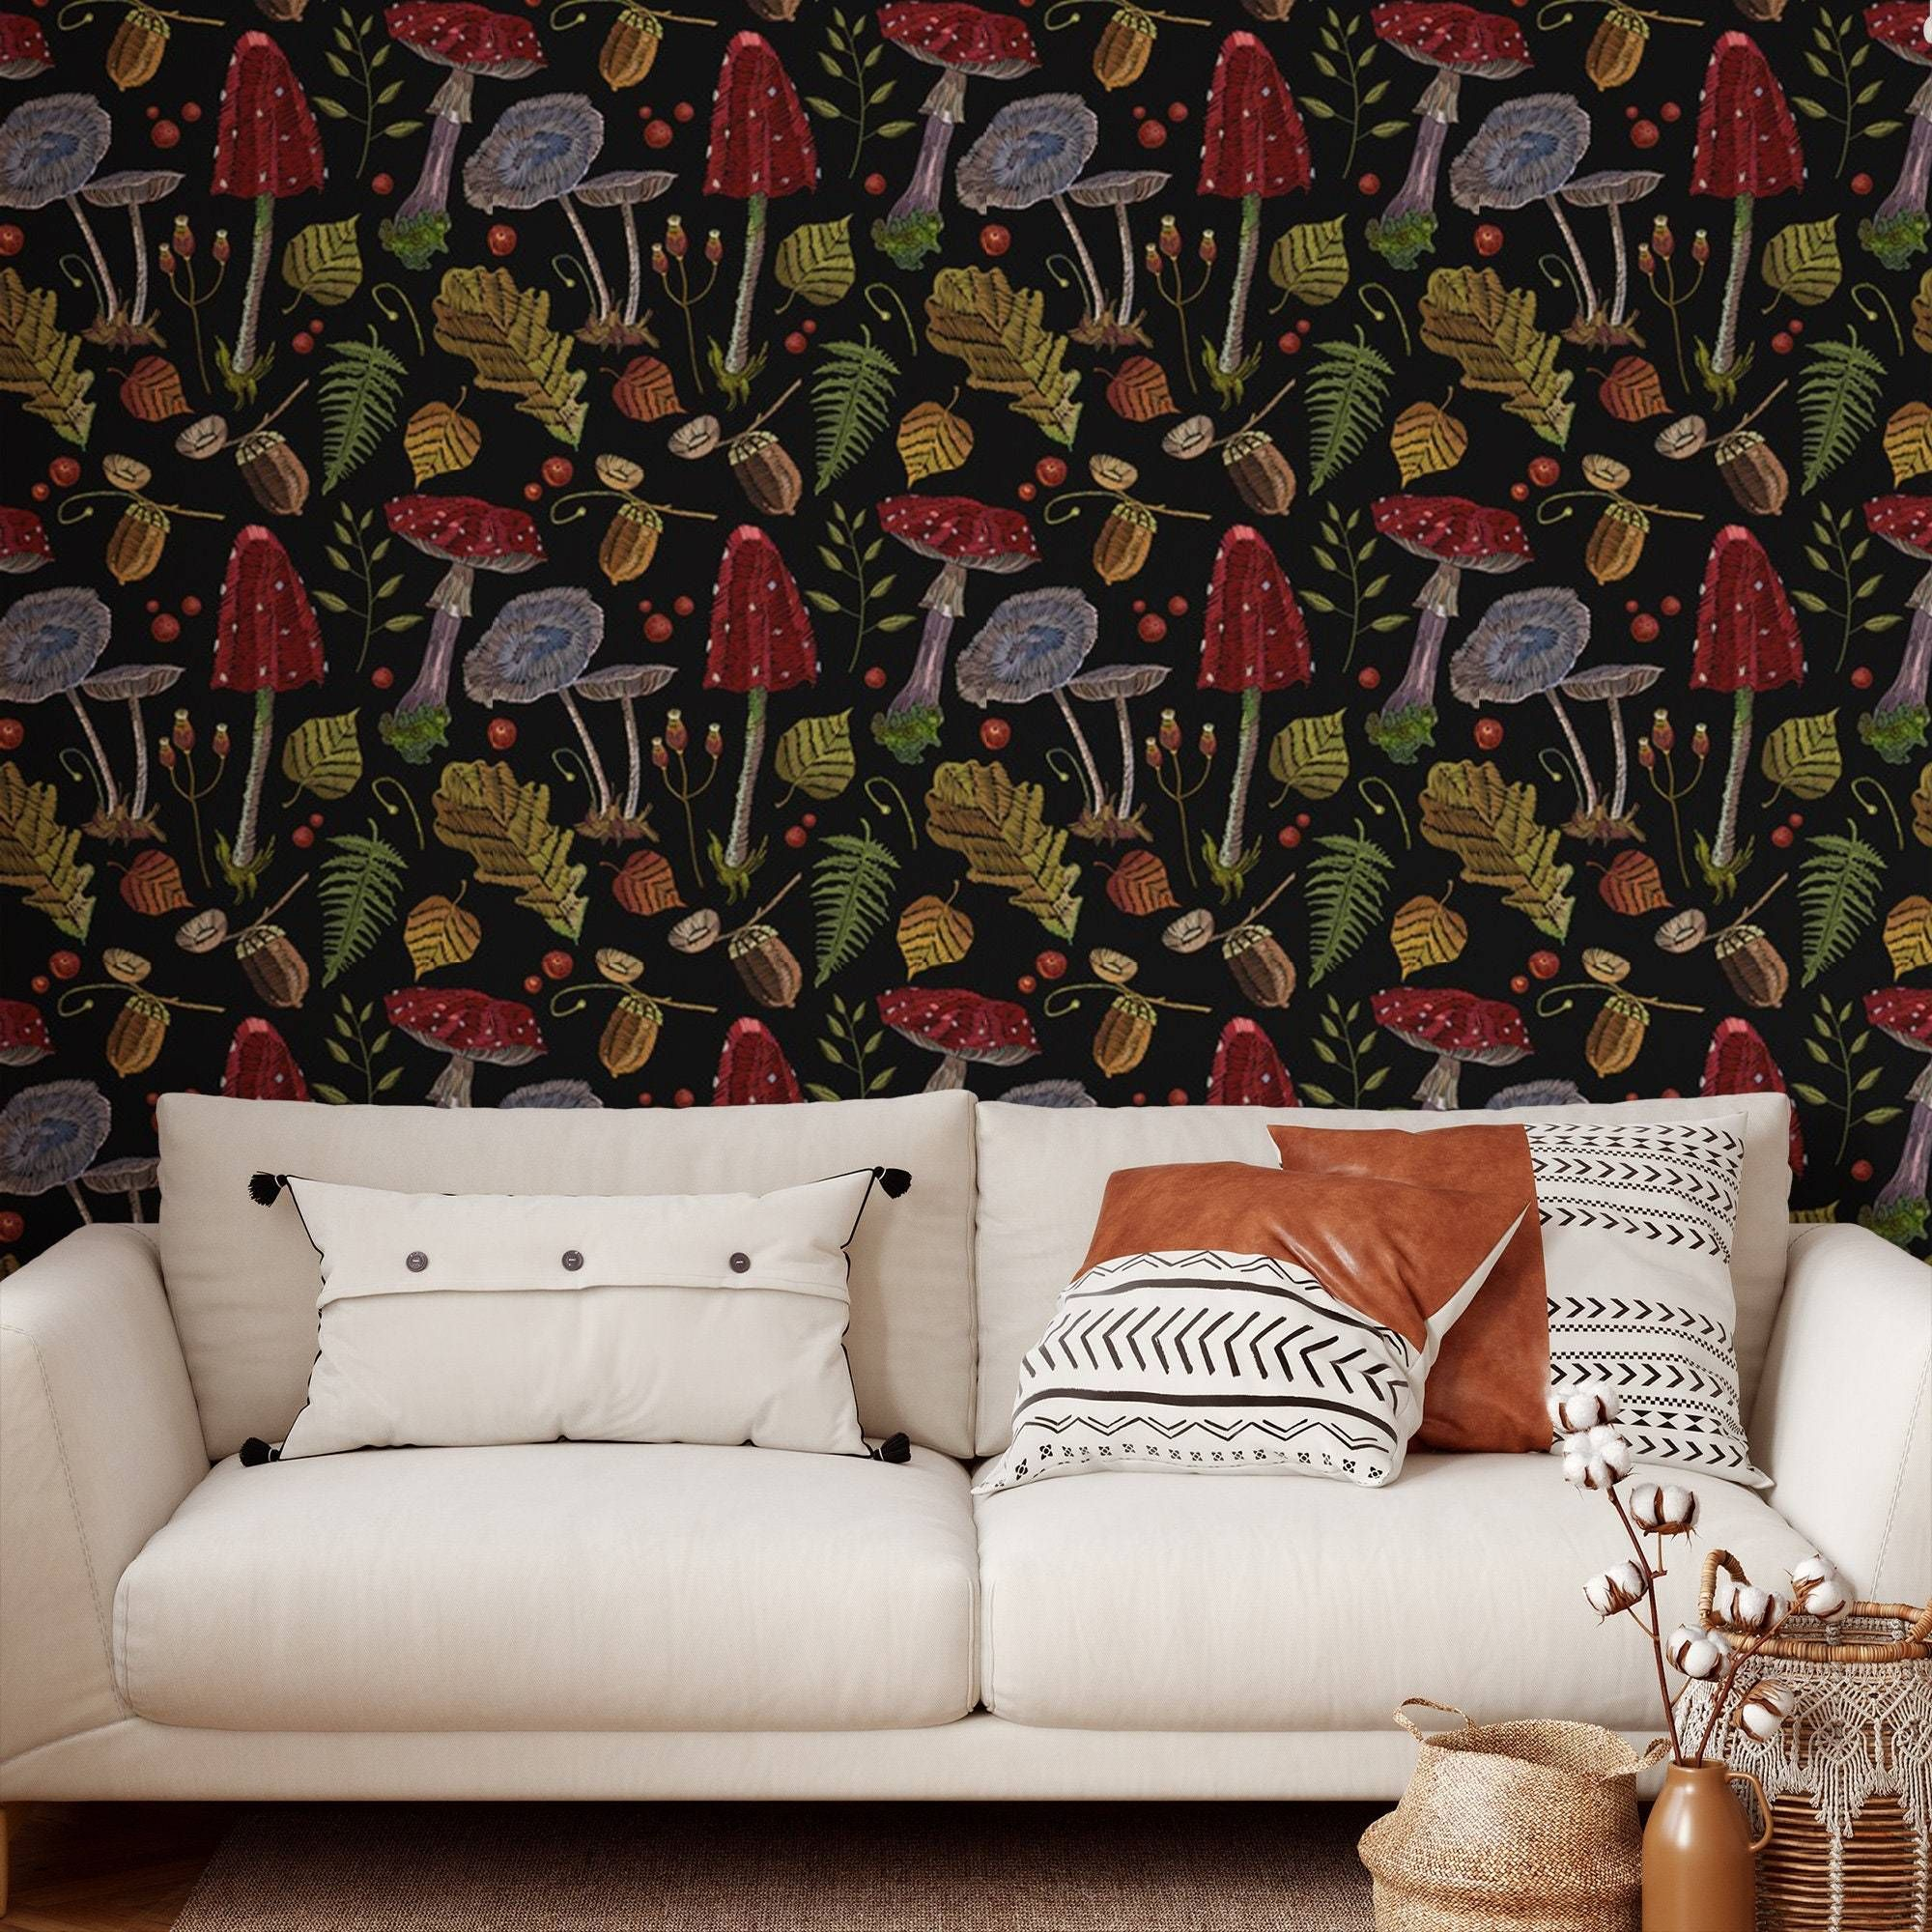 Mushrooms Peel and Stick Wallpaper - Smooth Wall Decal / 1 roll: 24W x 72H